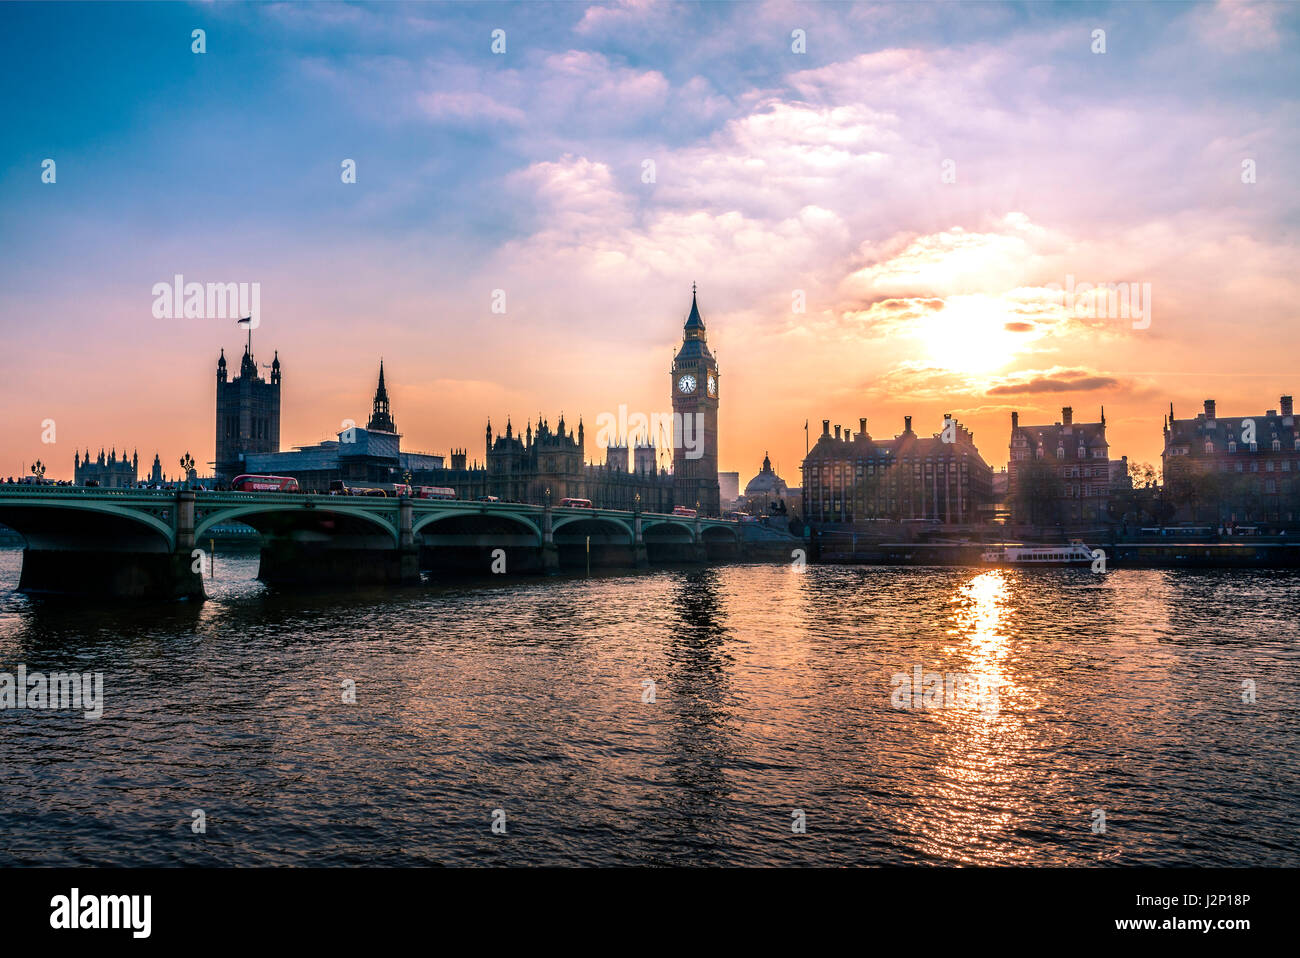 Big Ben, Houses of Parliament, Westminster Bridge, Thames, Sunset, City of Westminster, London, London region, England - Stock Image